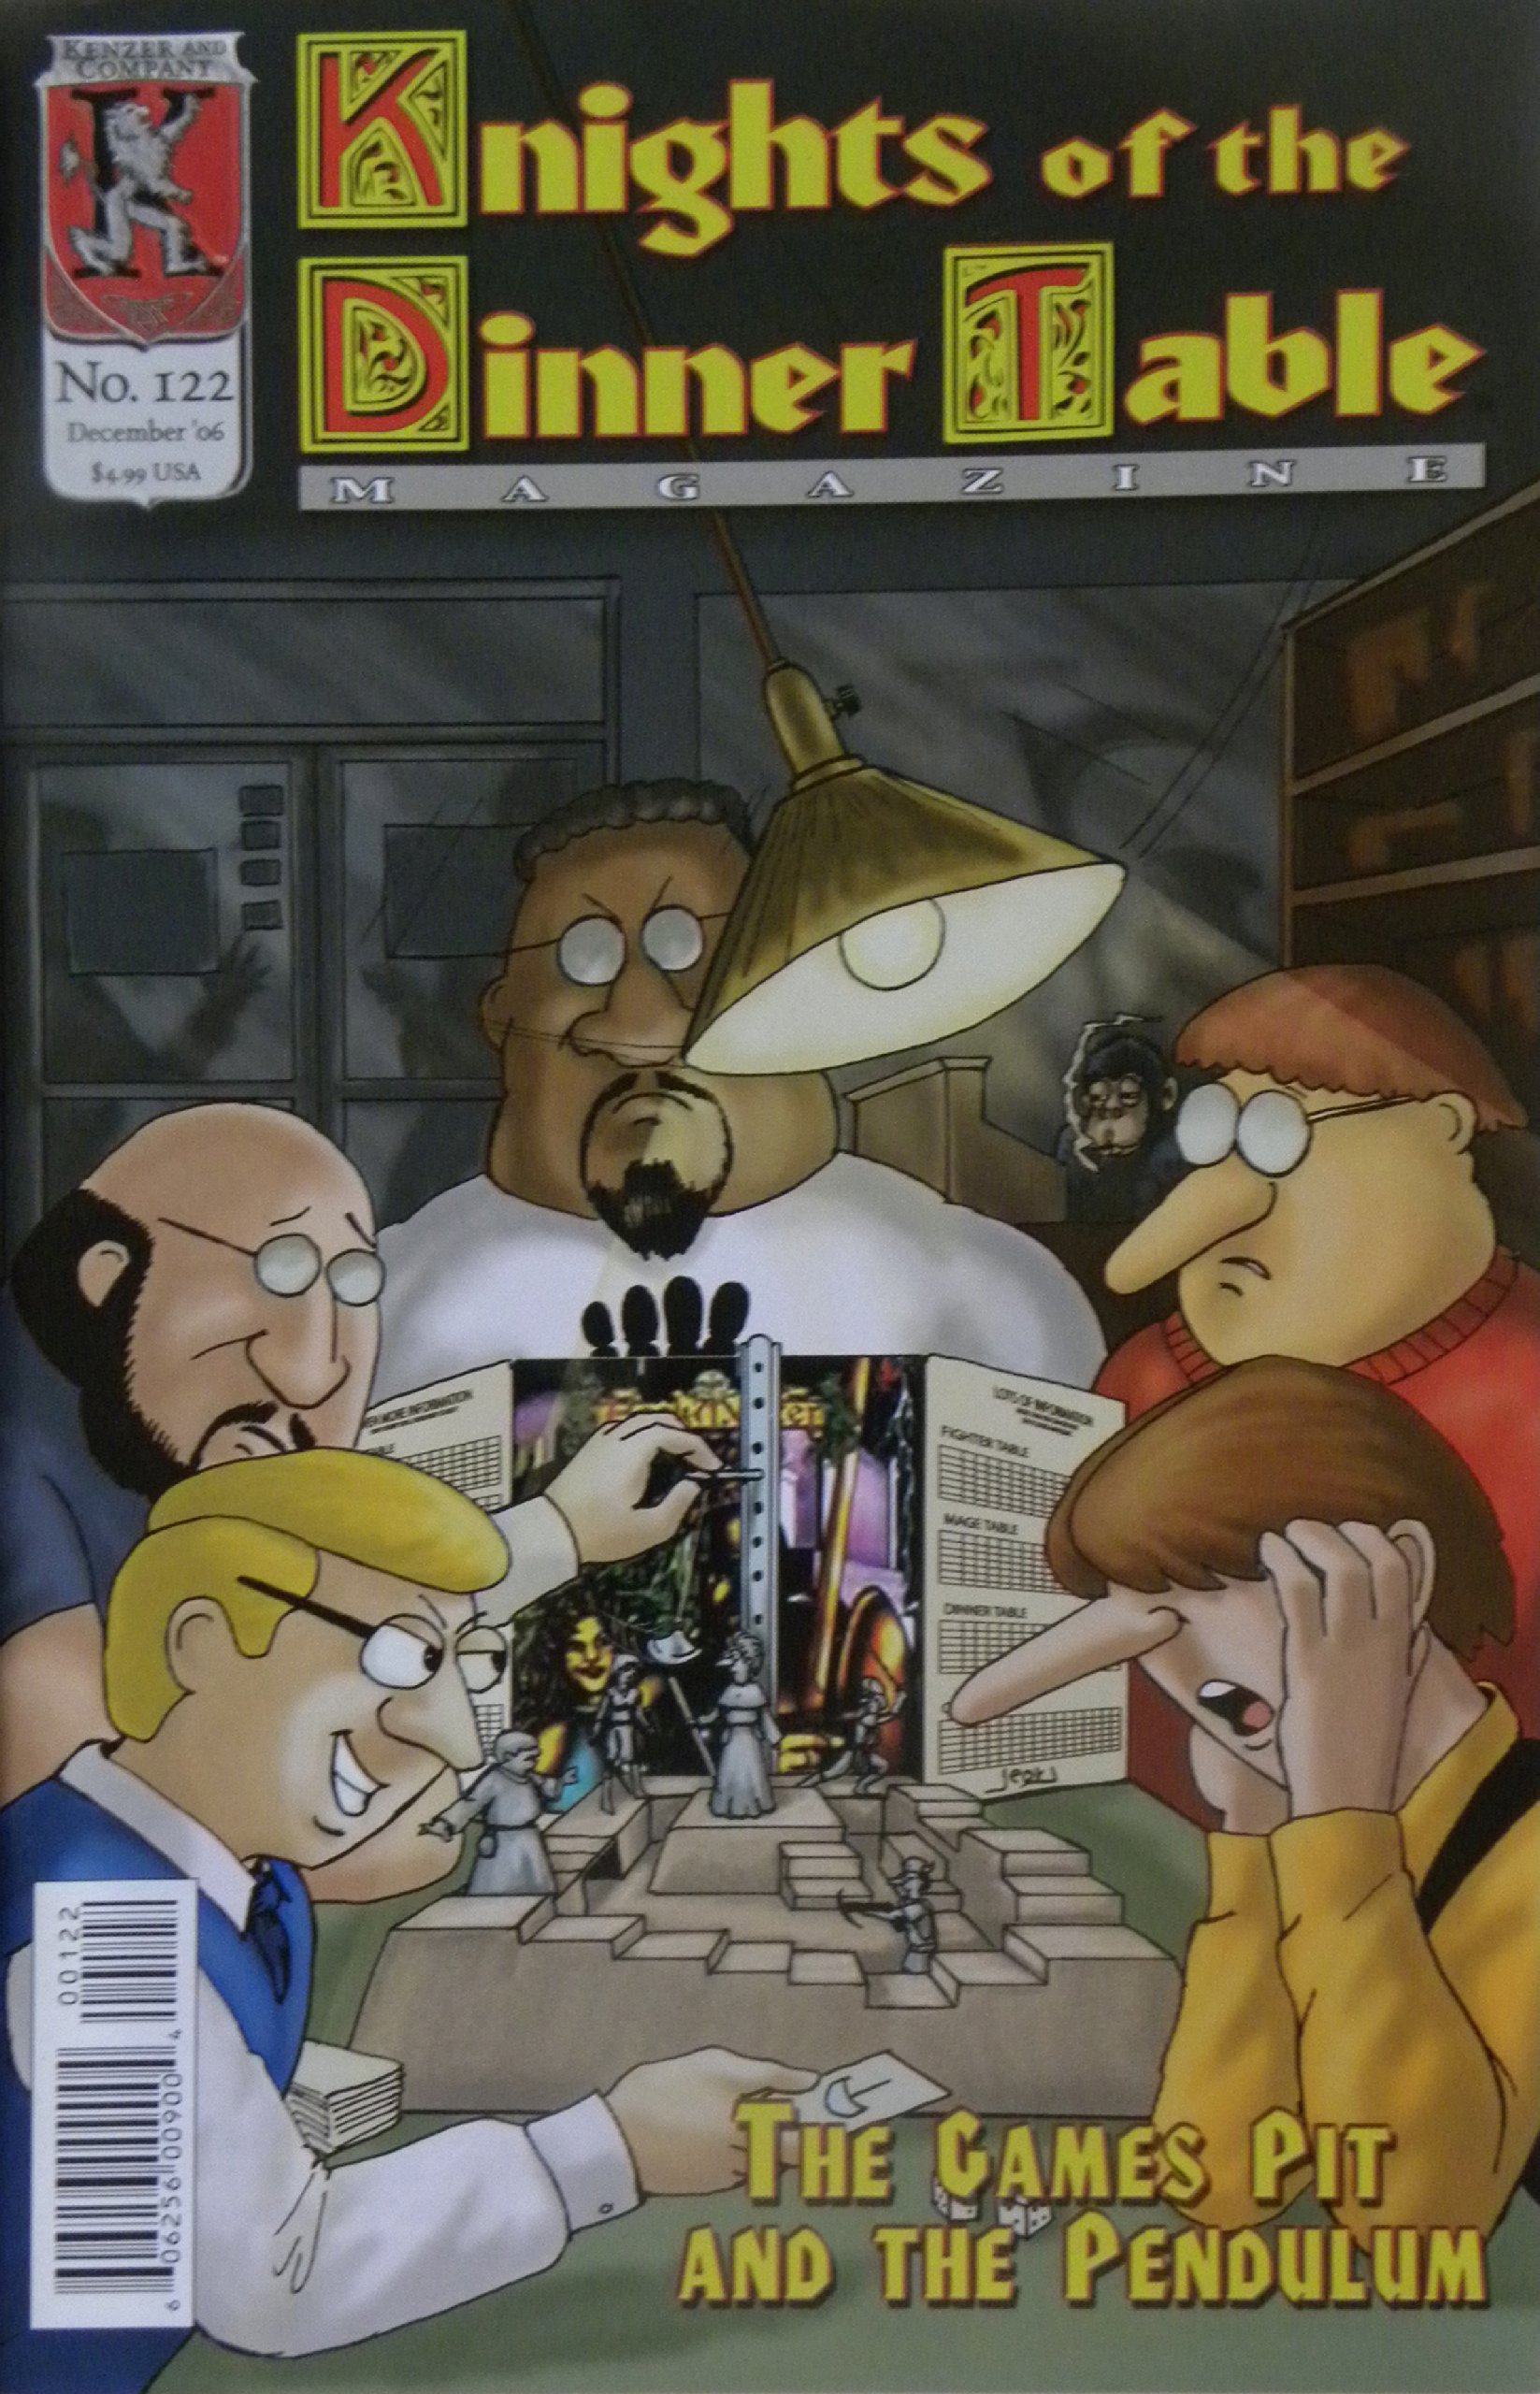 Read Online Knights of the Dinner Table Magazine #122 The Games Pit and the Pendulum ebook